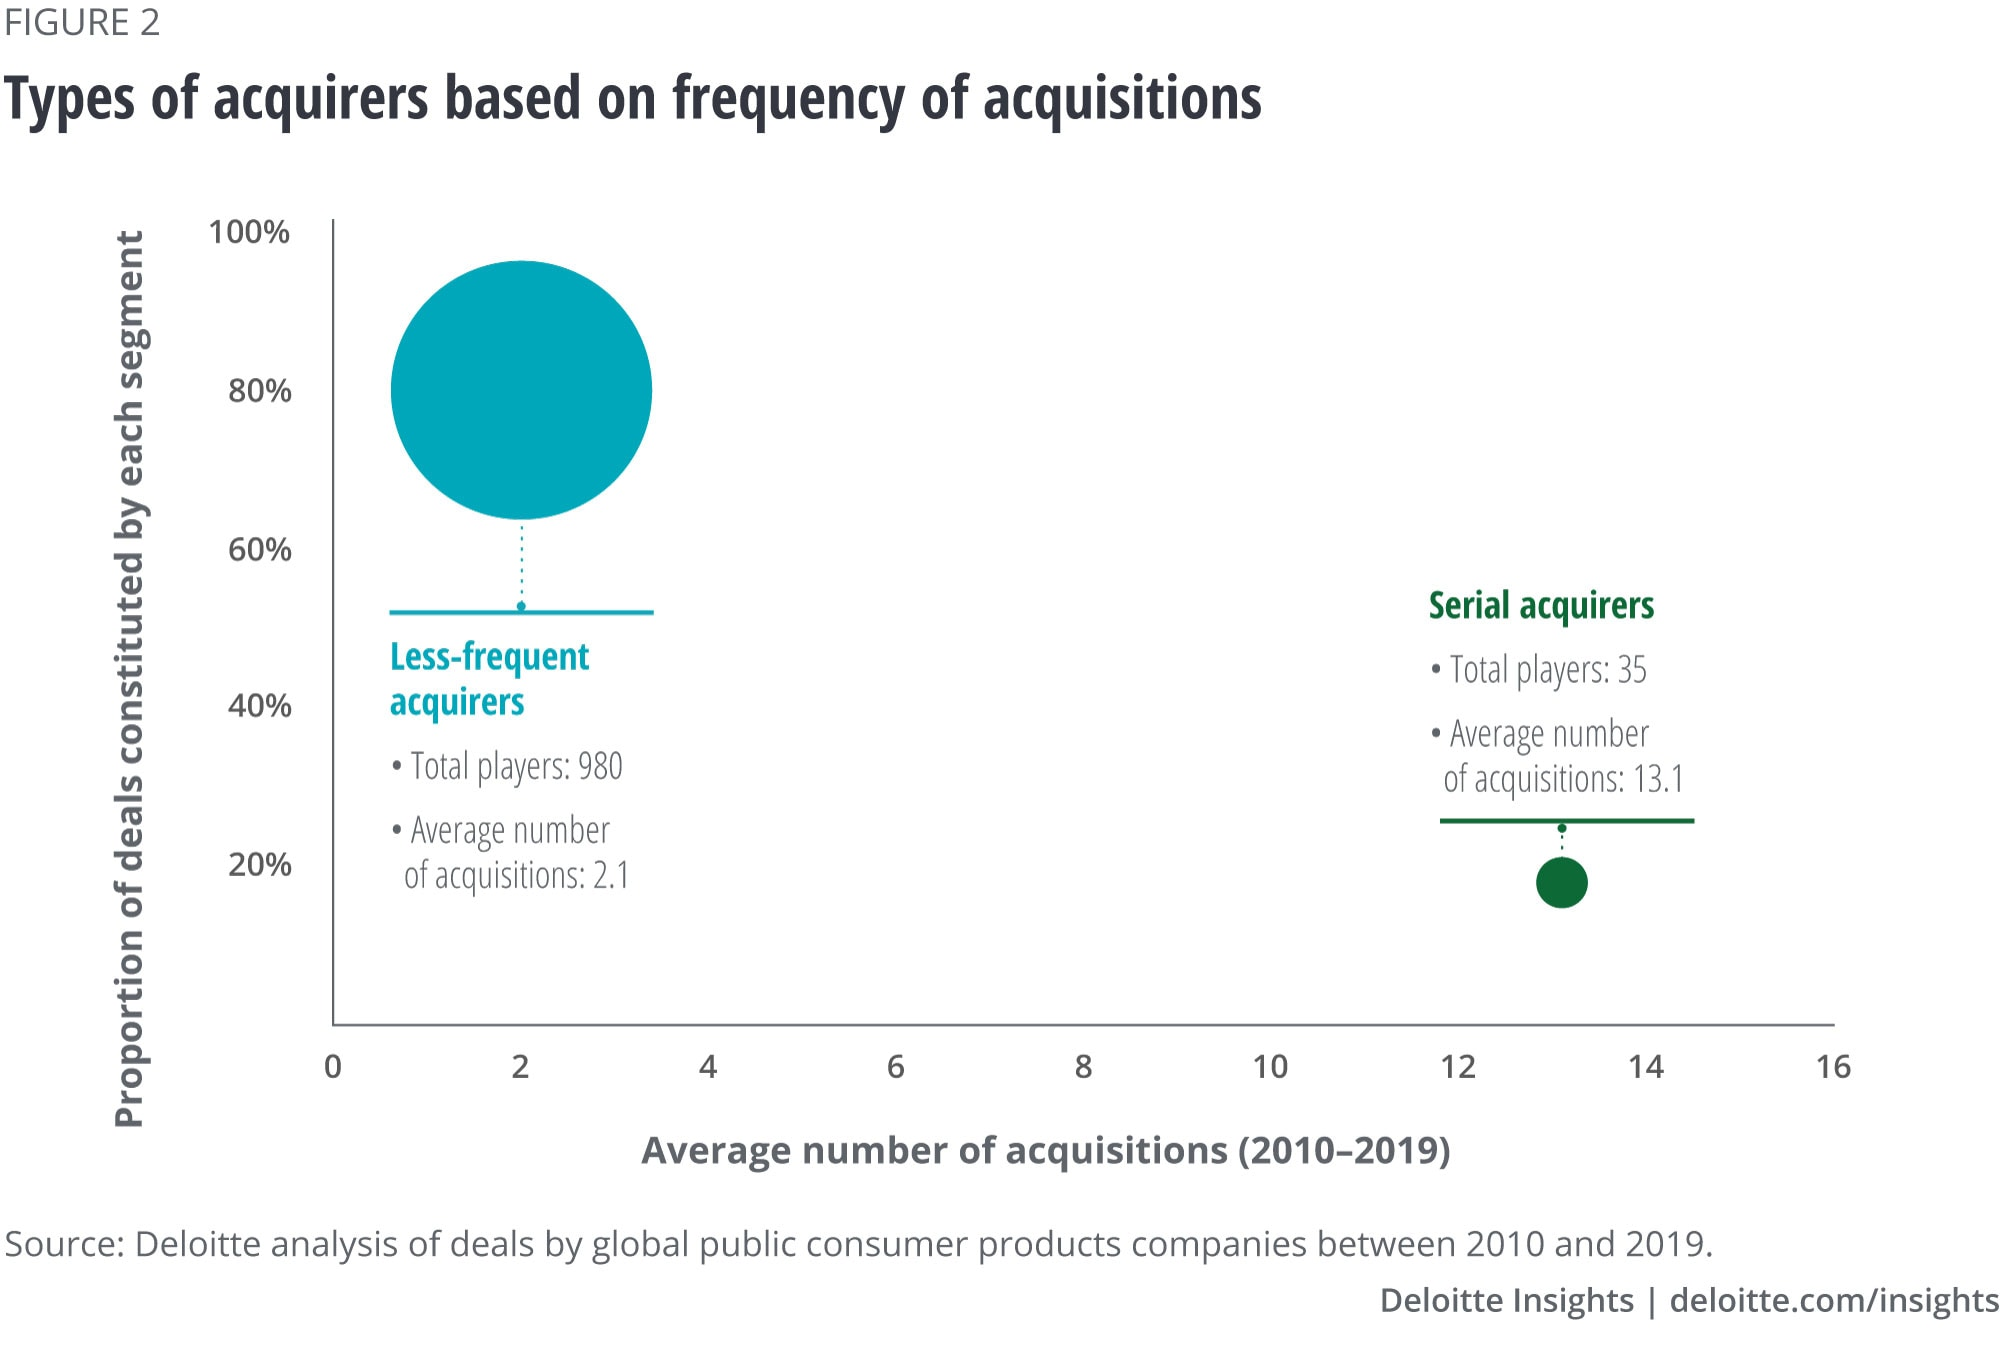 Types of ac	quirers based on frequency of acquisitions